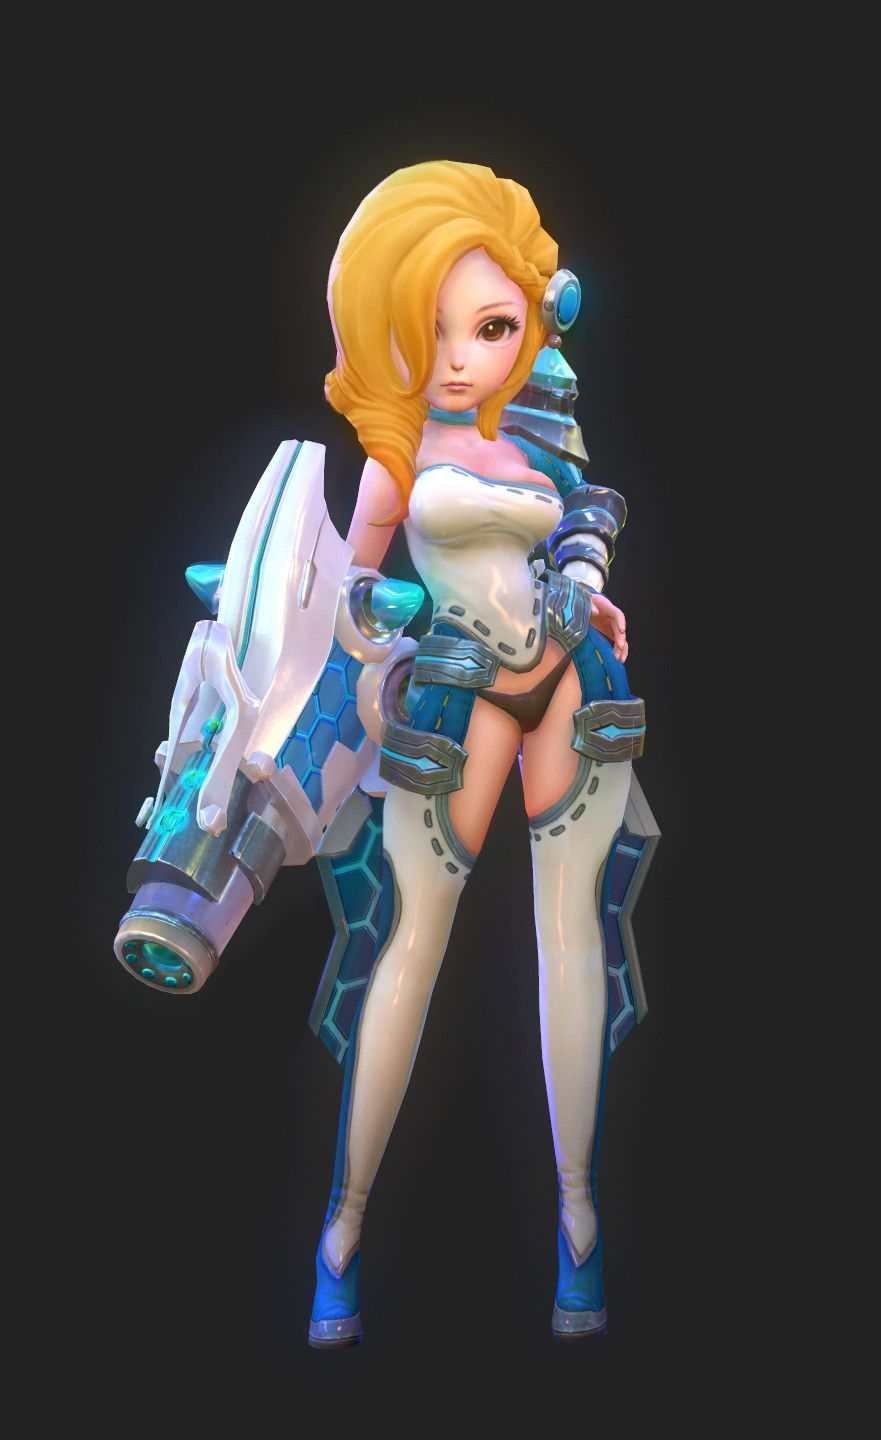 Babygunner, B ge on ArtStation at https://www.artstation.com/artwork/wOaZX